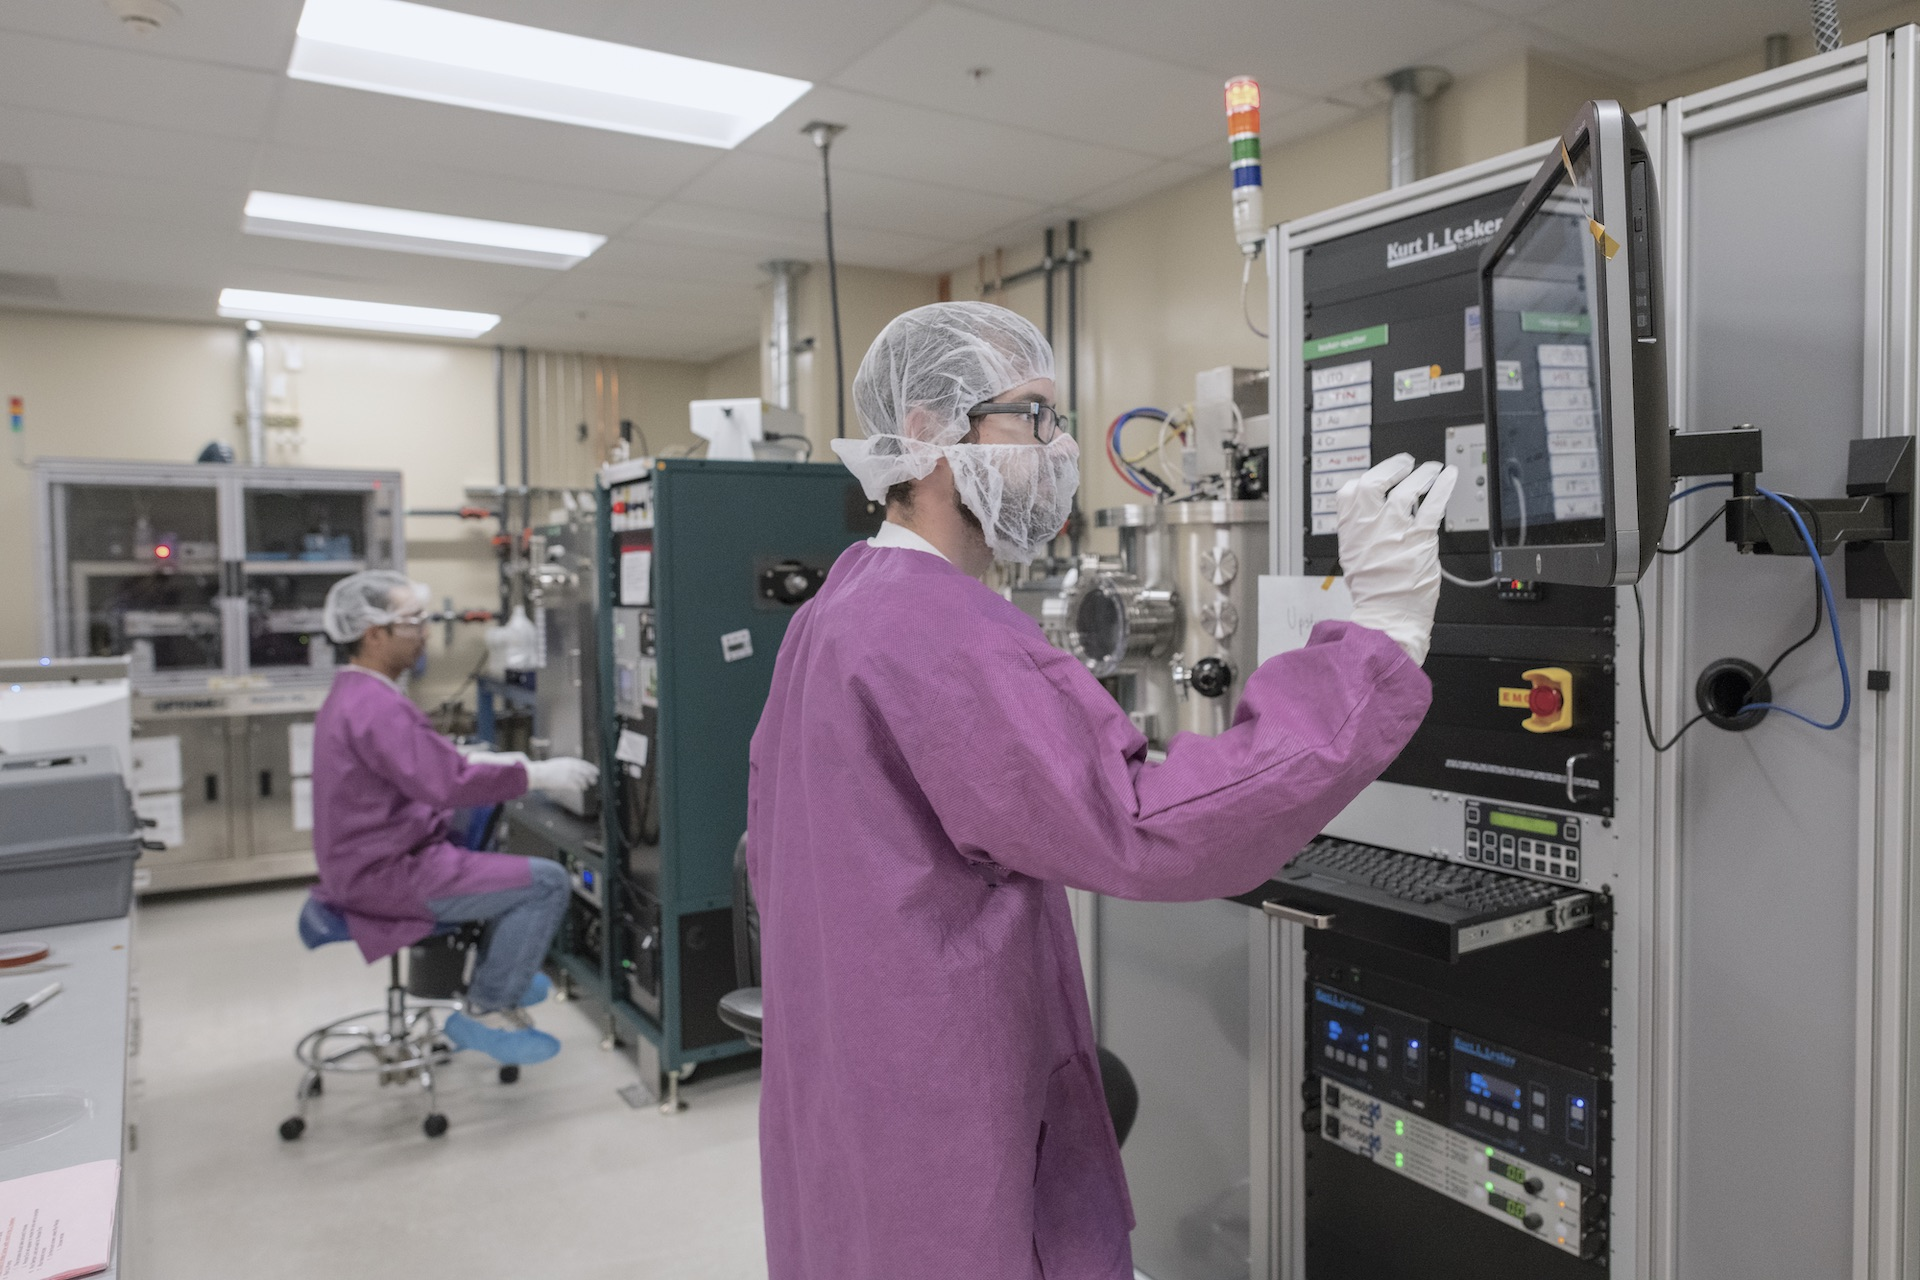 Researchers in protective gears working in a lab.